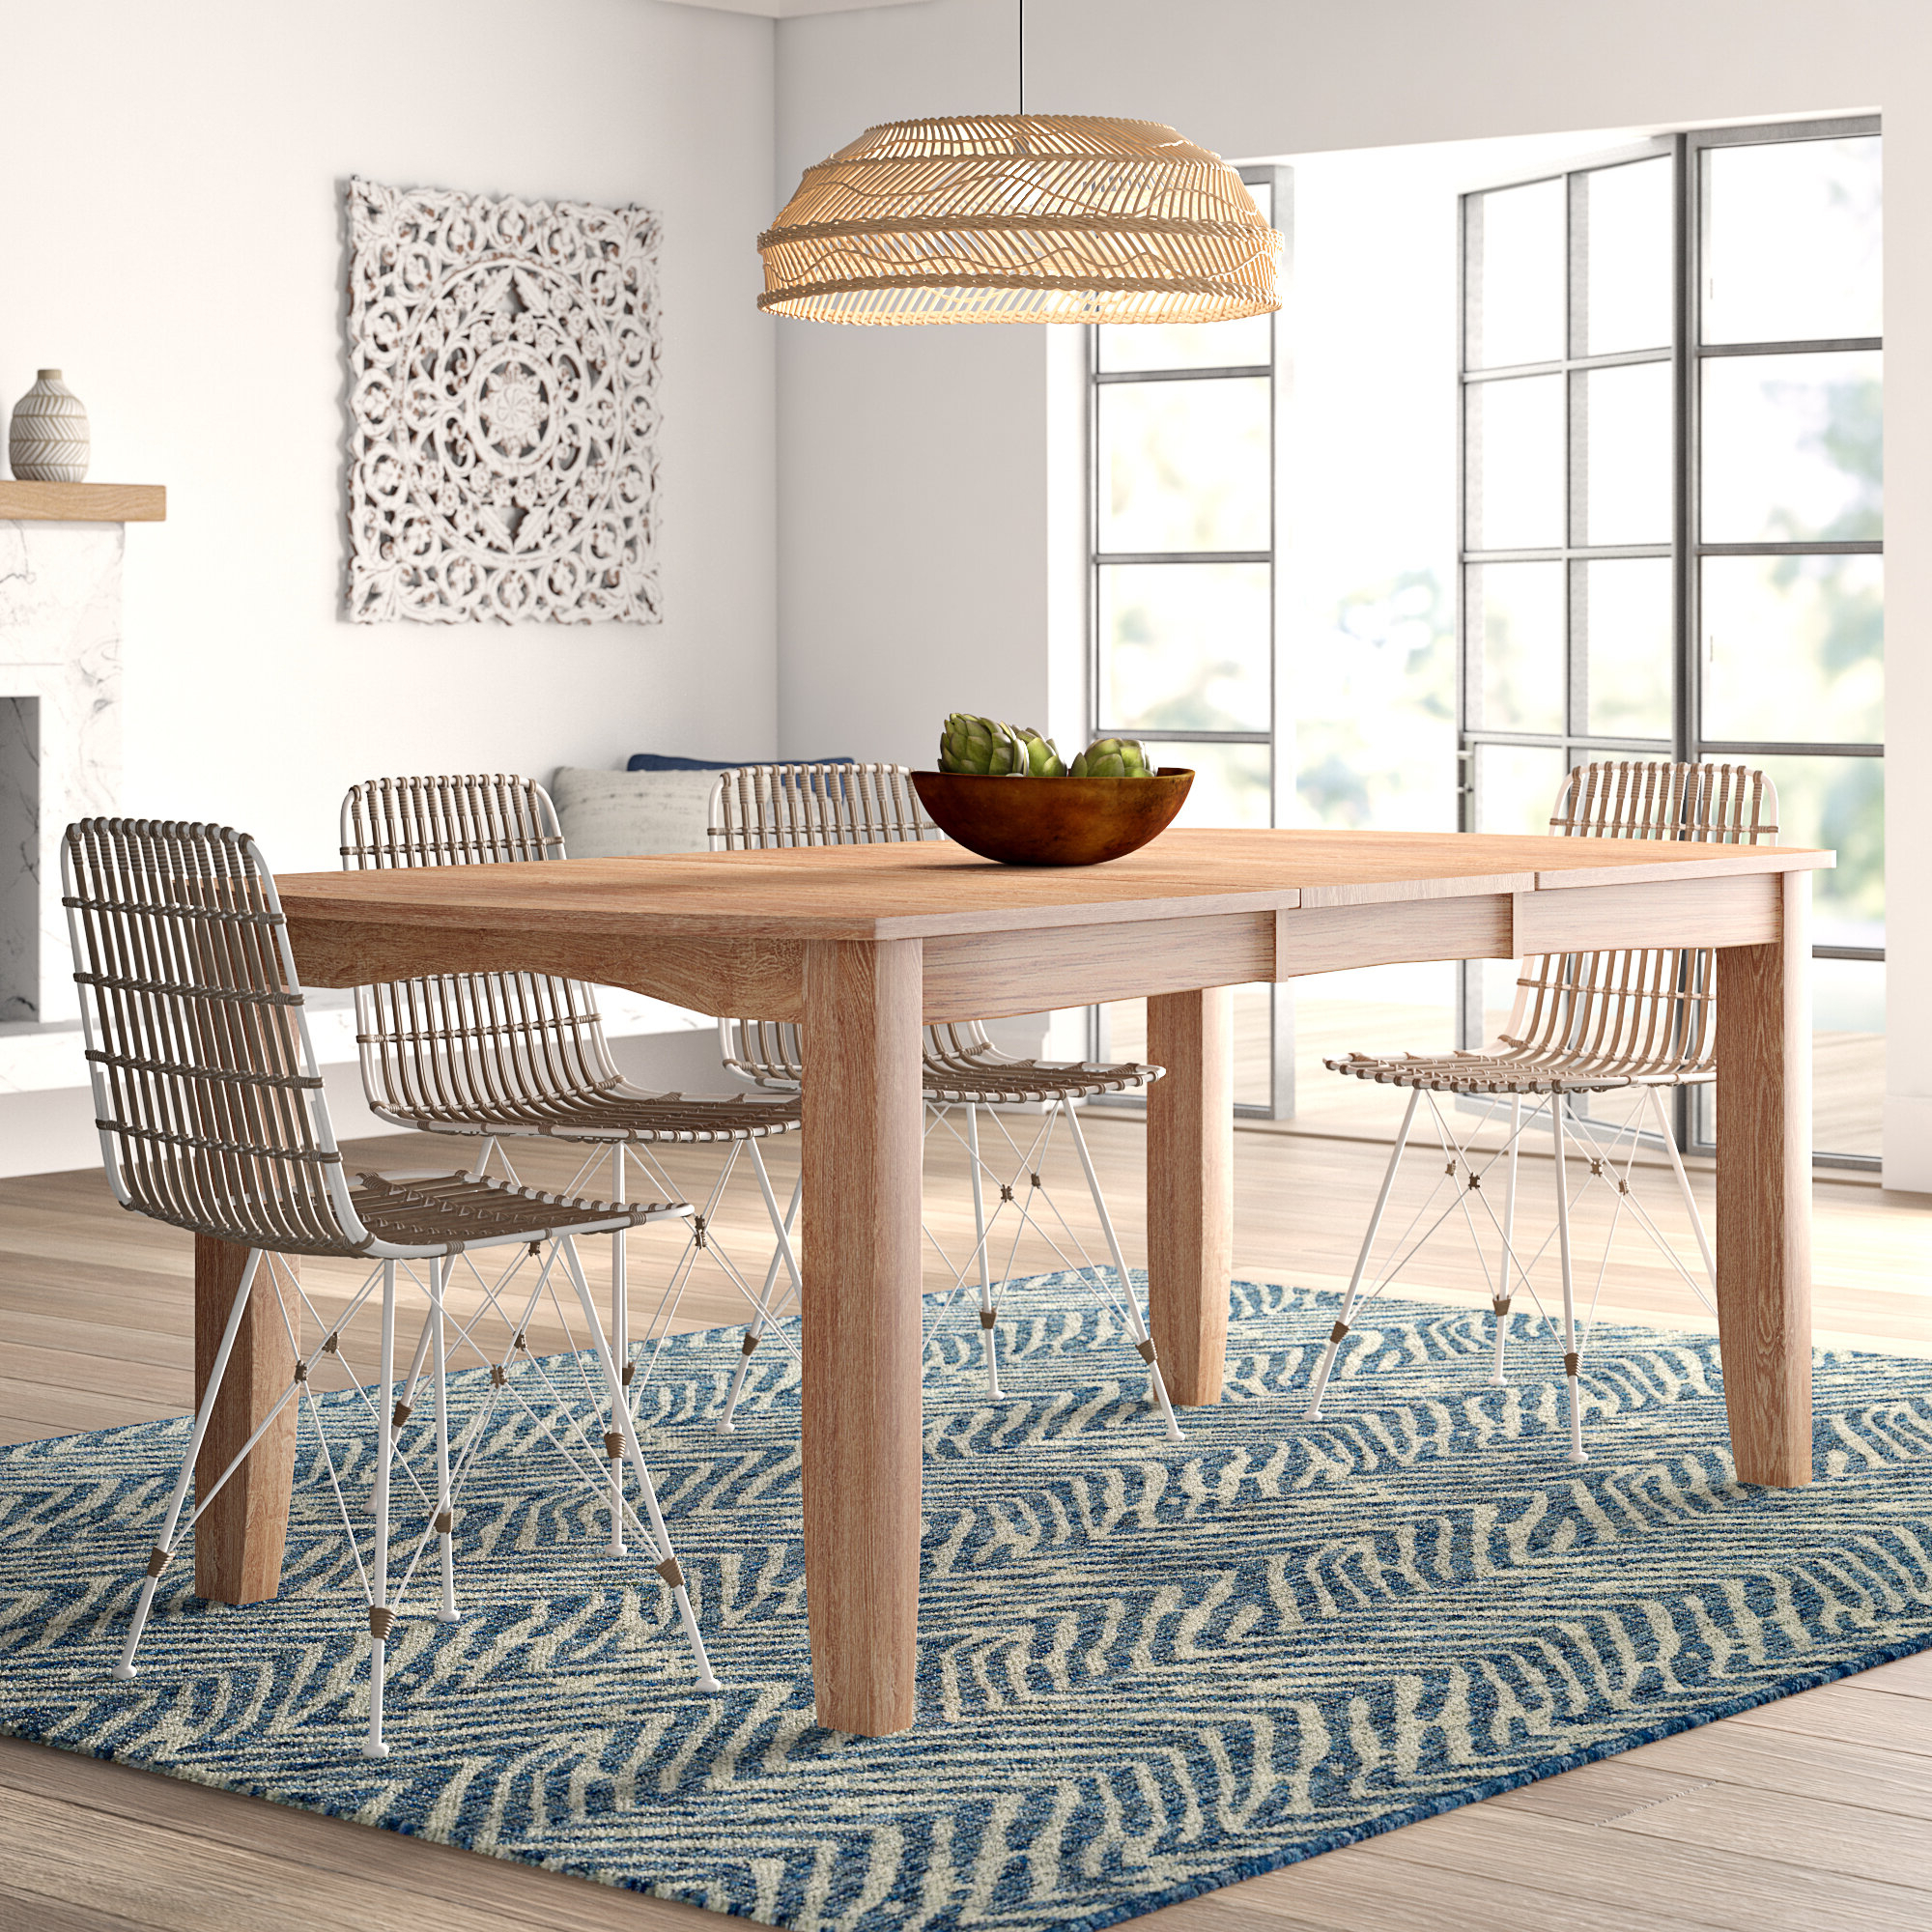 Current Mistana Lynn Extendable Solid Wood Dining Table & Reviews For 8 Seater Wood Contemporary Dining Tables With Extension Leaf (View 16 of 25)